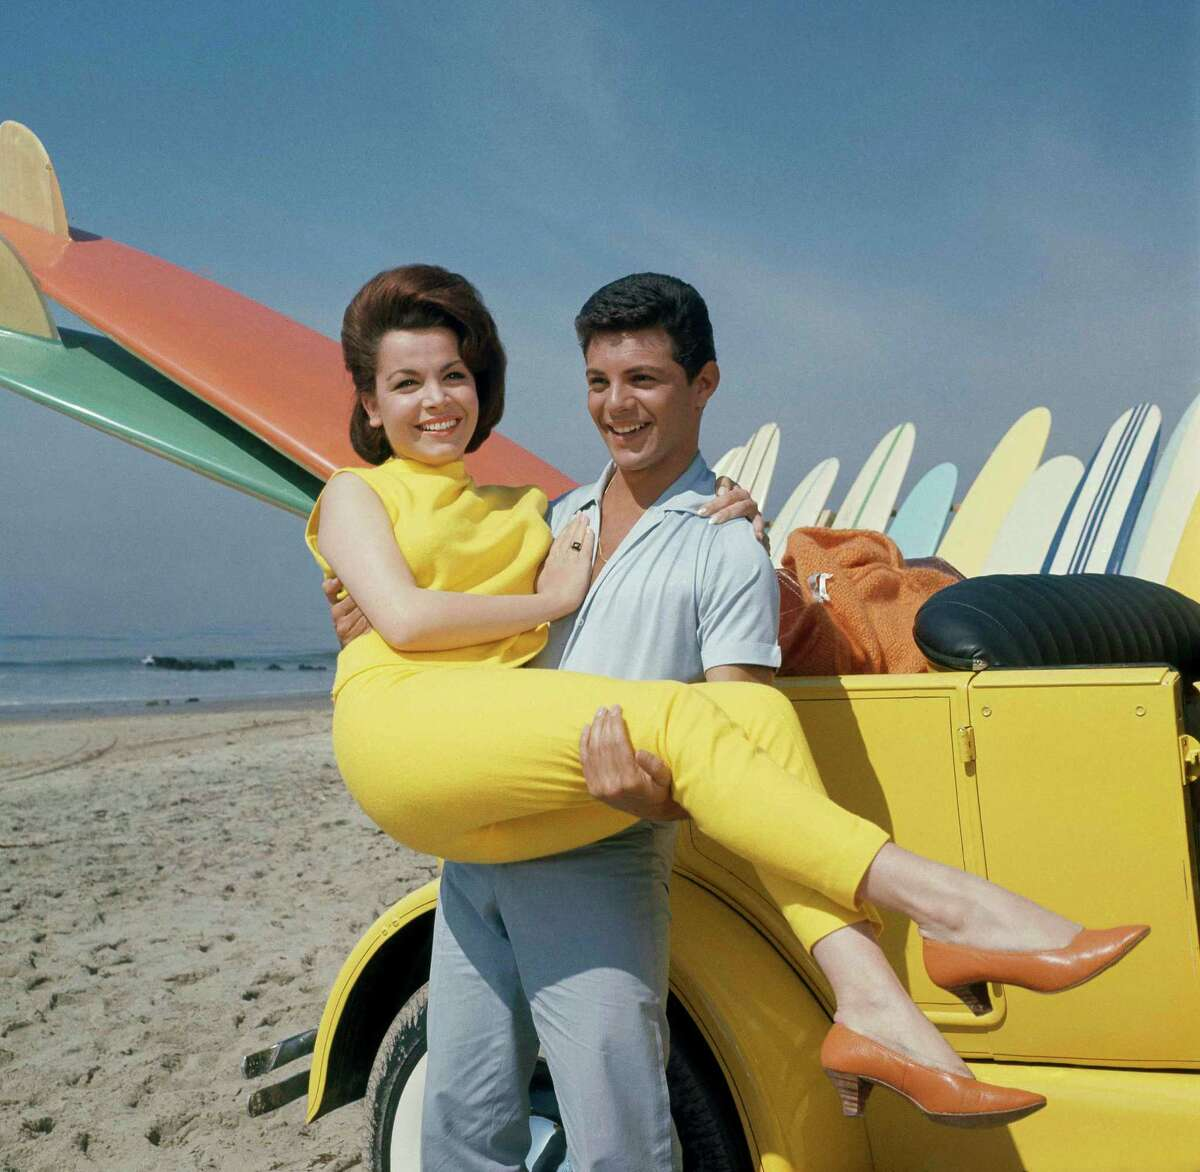 """Annette Funicello made six beach movies with Frankie Avalon, including """"Beach Party"""" in 1963. She once described the pairing as being the """"Ma and Pa Kettle of the surf set."""""""